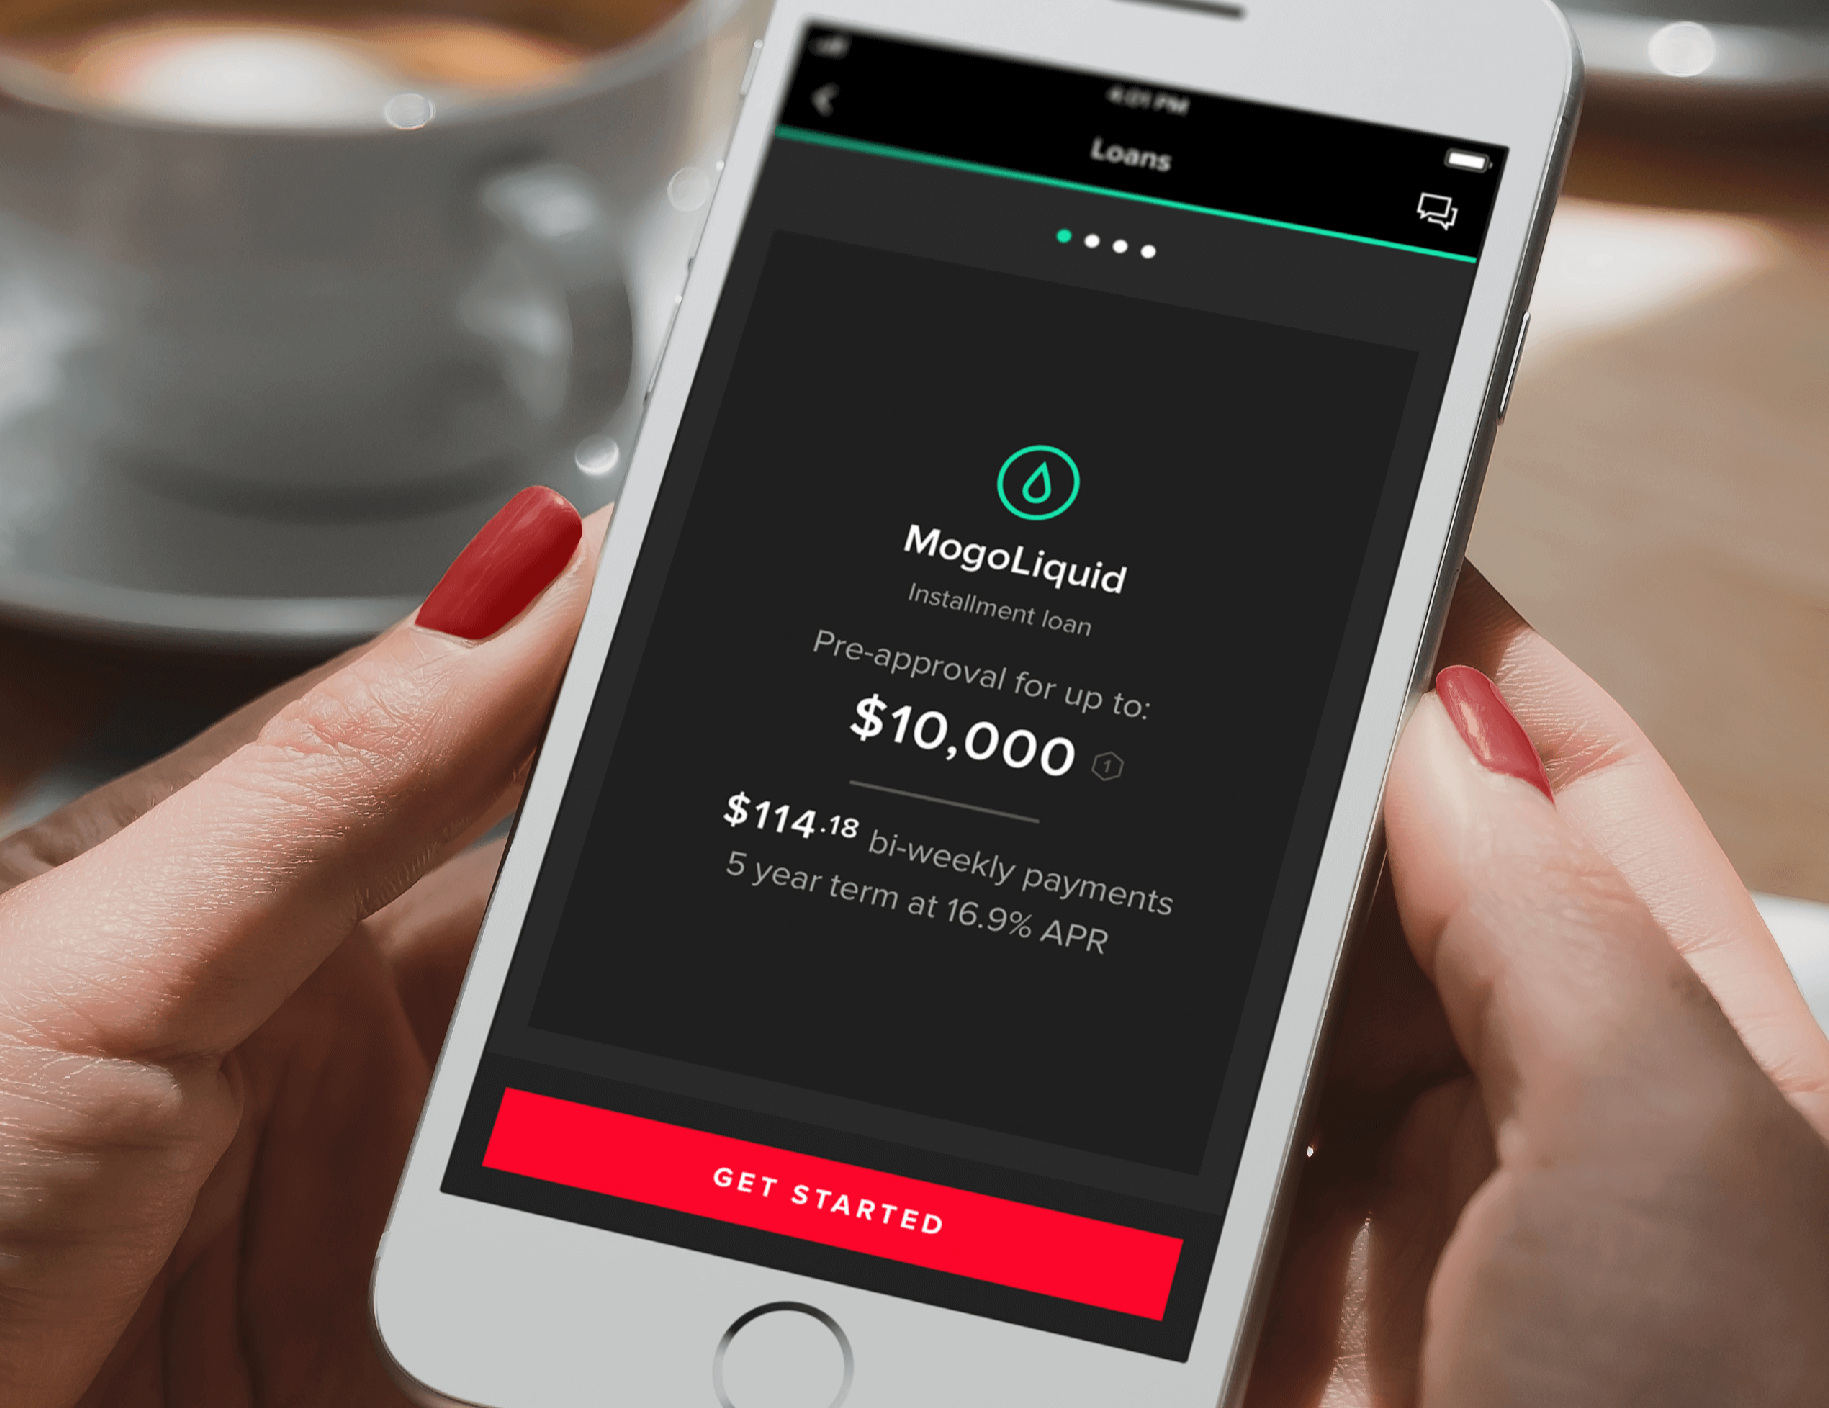 Digital Loan Application - The path to a fully digital loan experience